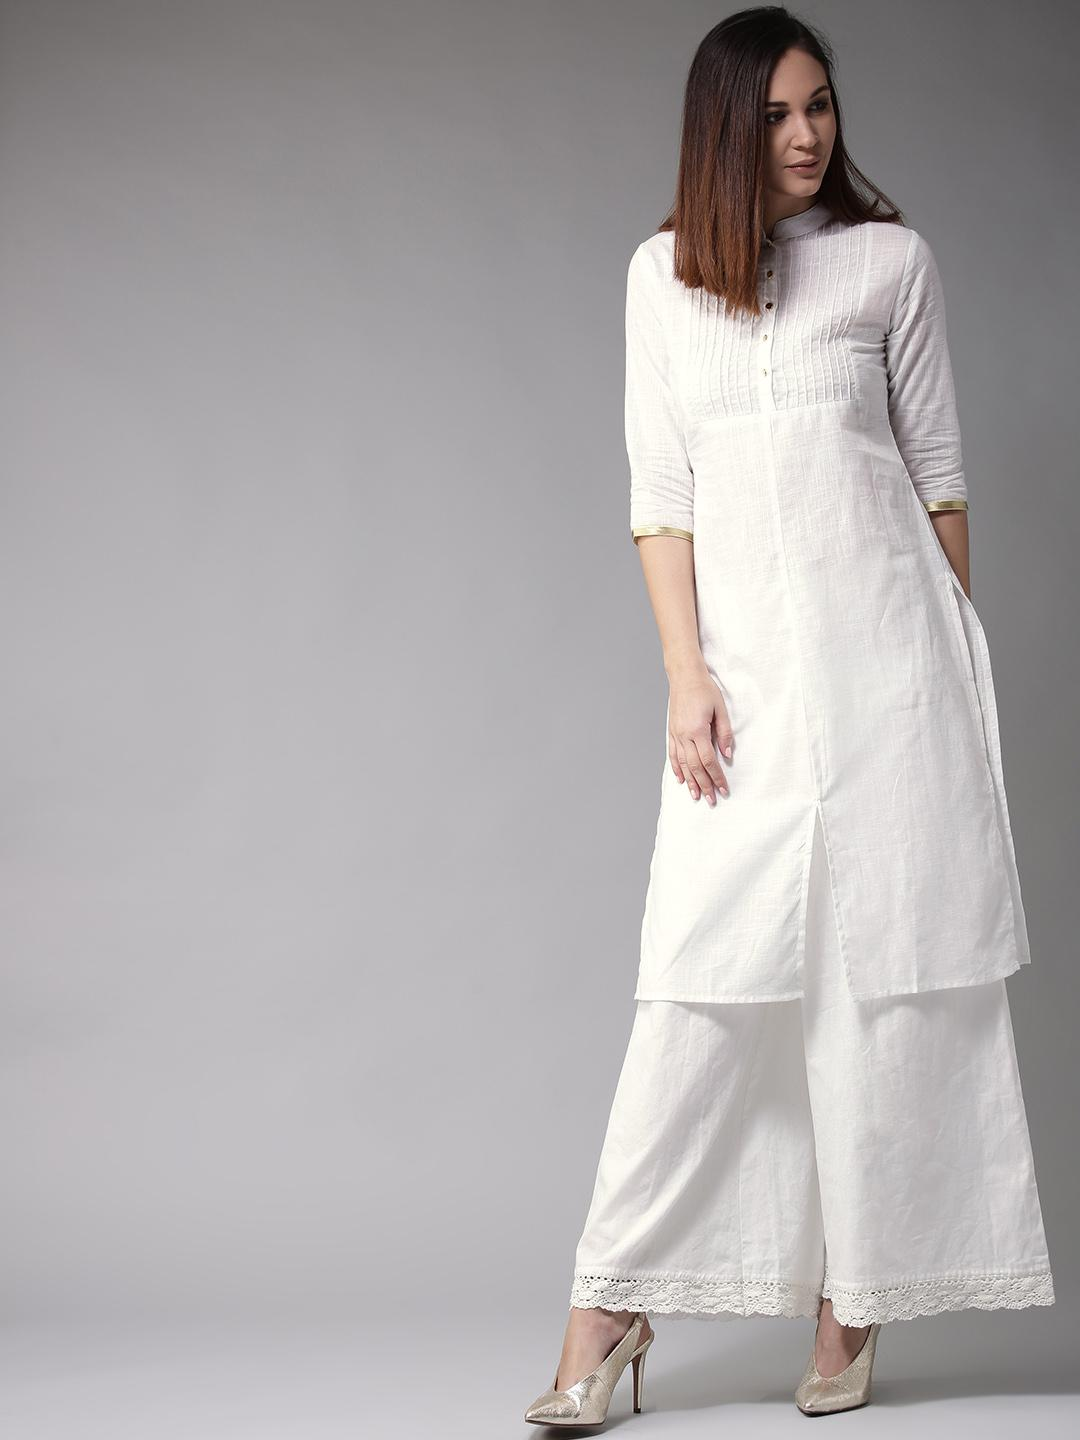 White Pleated Neck Solid Straight 2 Pcs Suit For Women. PNSS-314